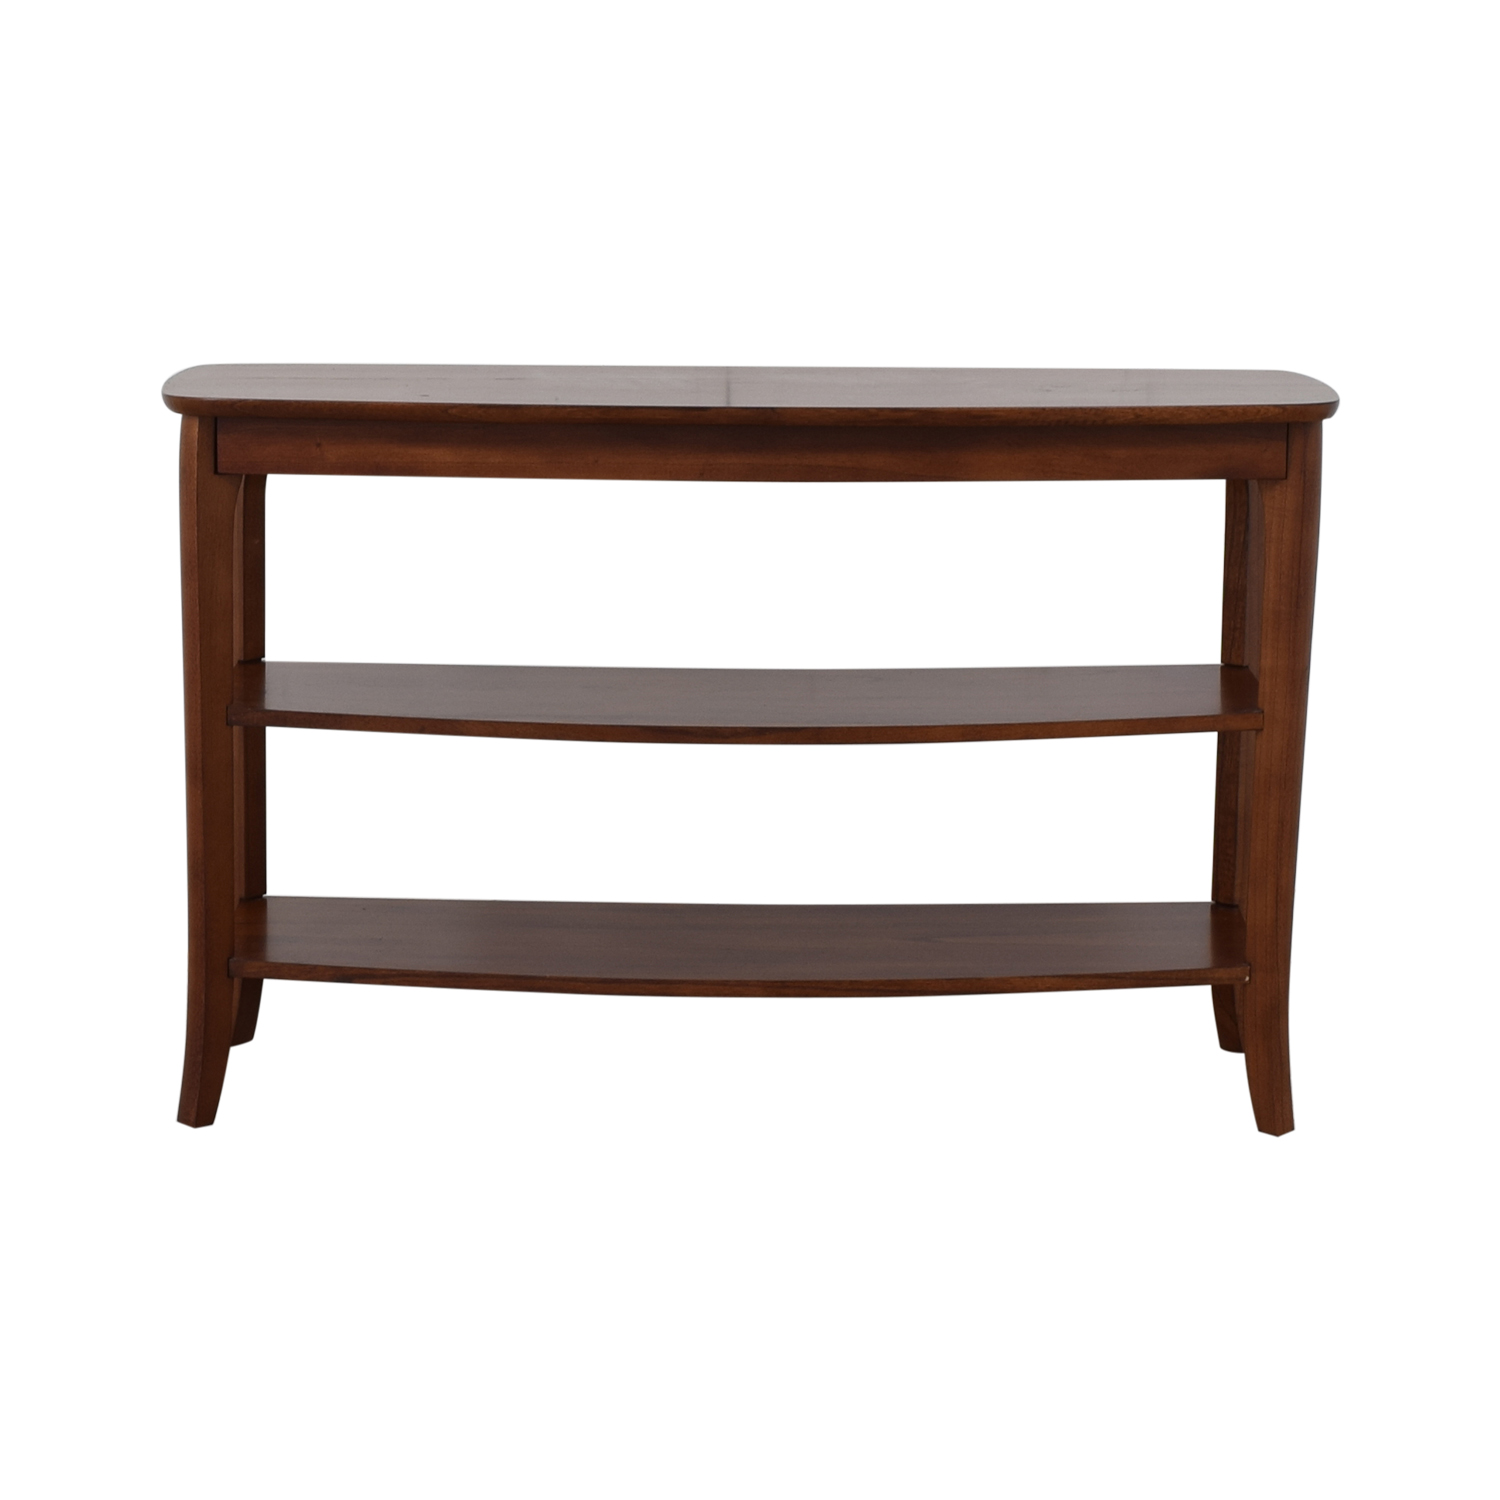 Pottery Barn Pottery Barn Chloe Wood Console for sale